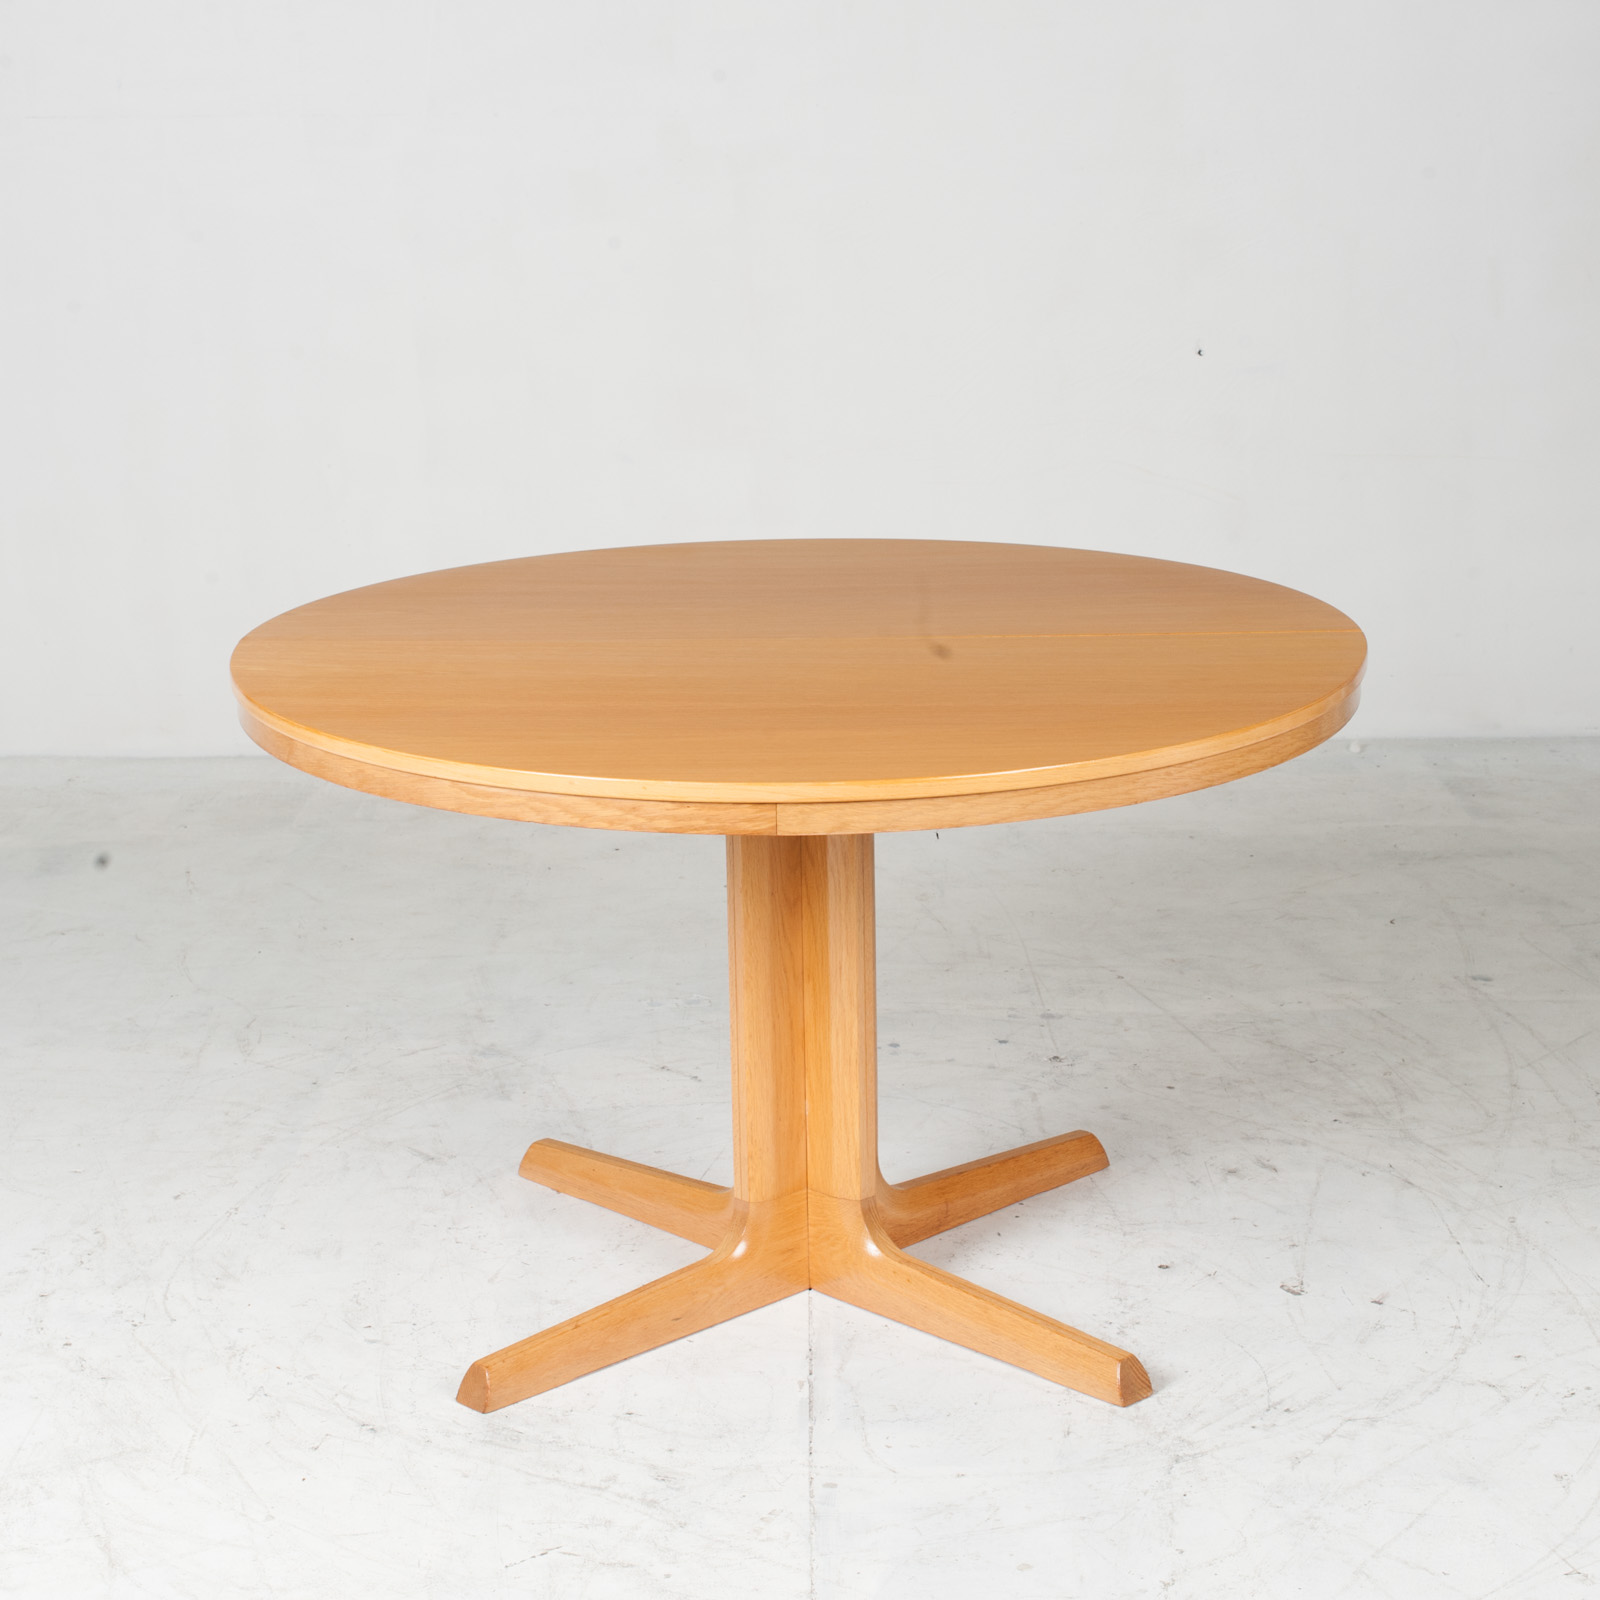 Round Dining Table In Oak With Pedestal Base And 2 Extentions 1960s Denmark 02